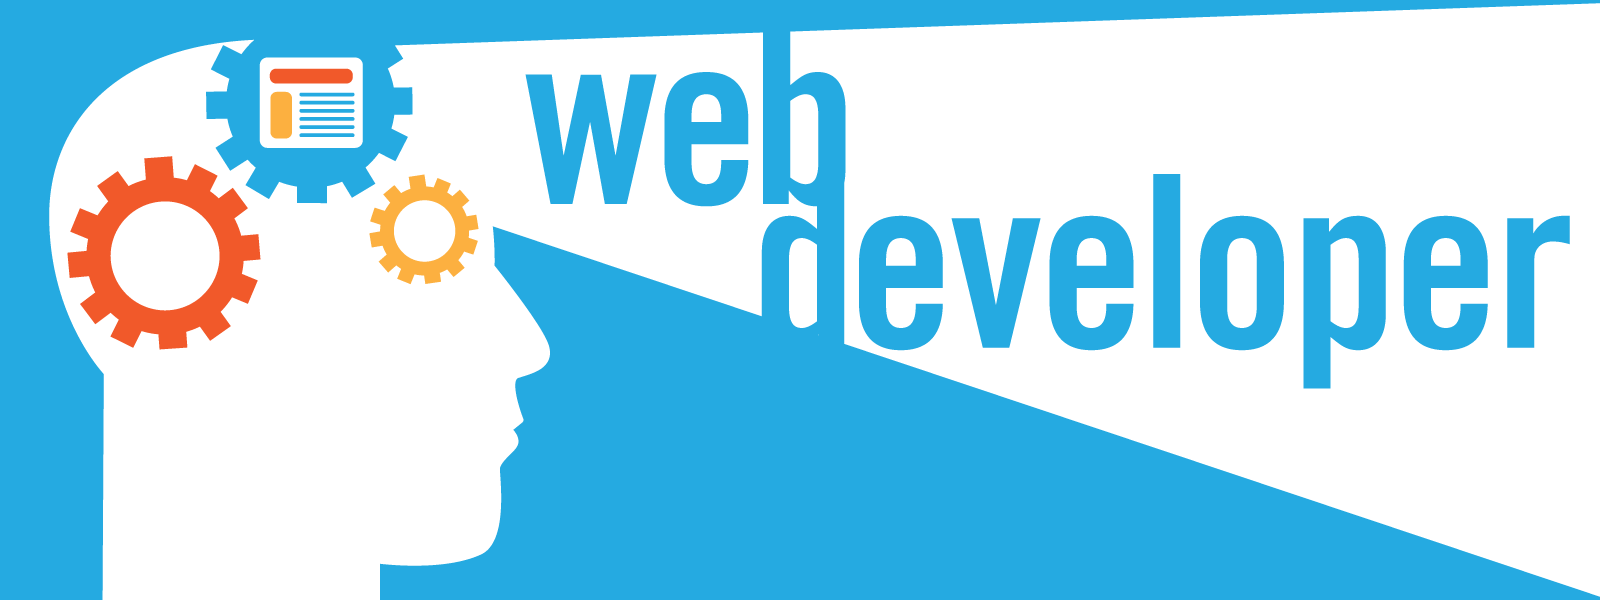 Webdevelopers must deliver the results